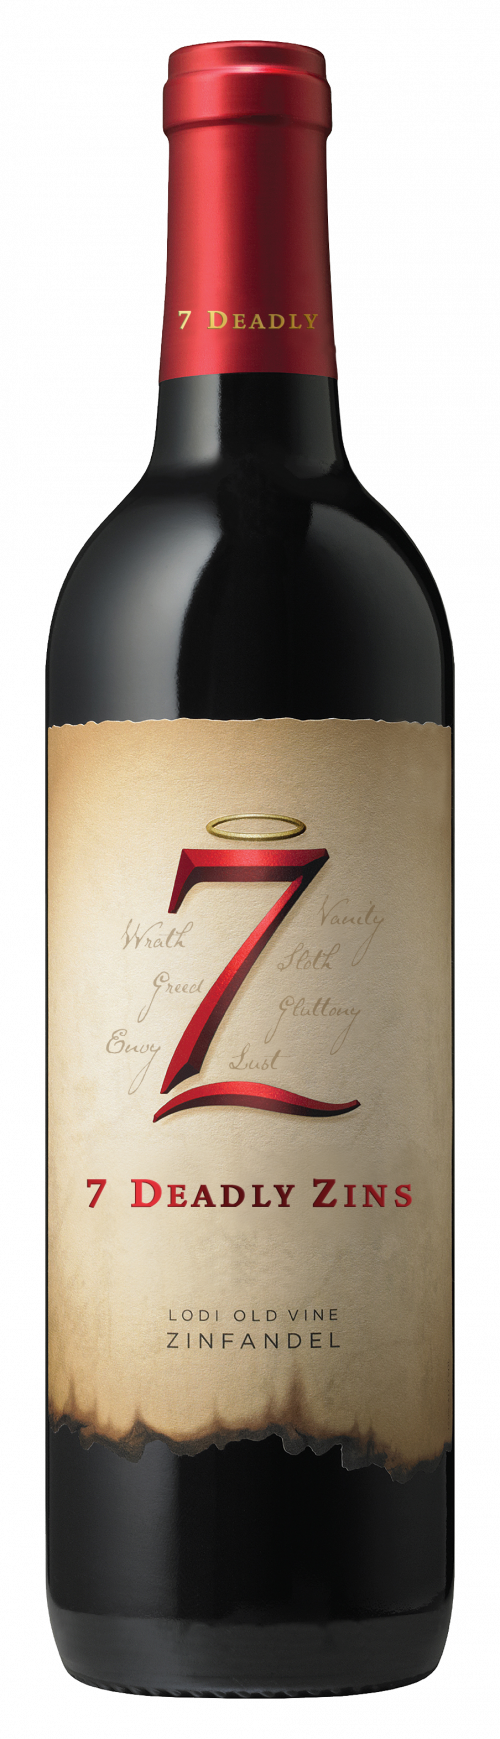 2017 Seven Deadly Zins Zinfandel 750ml